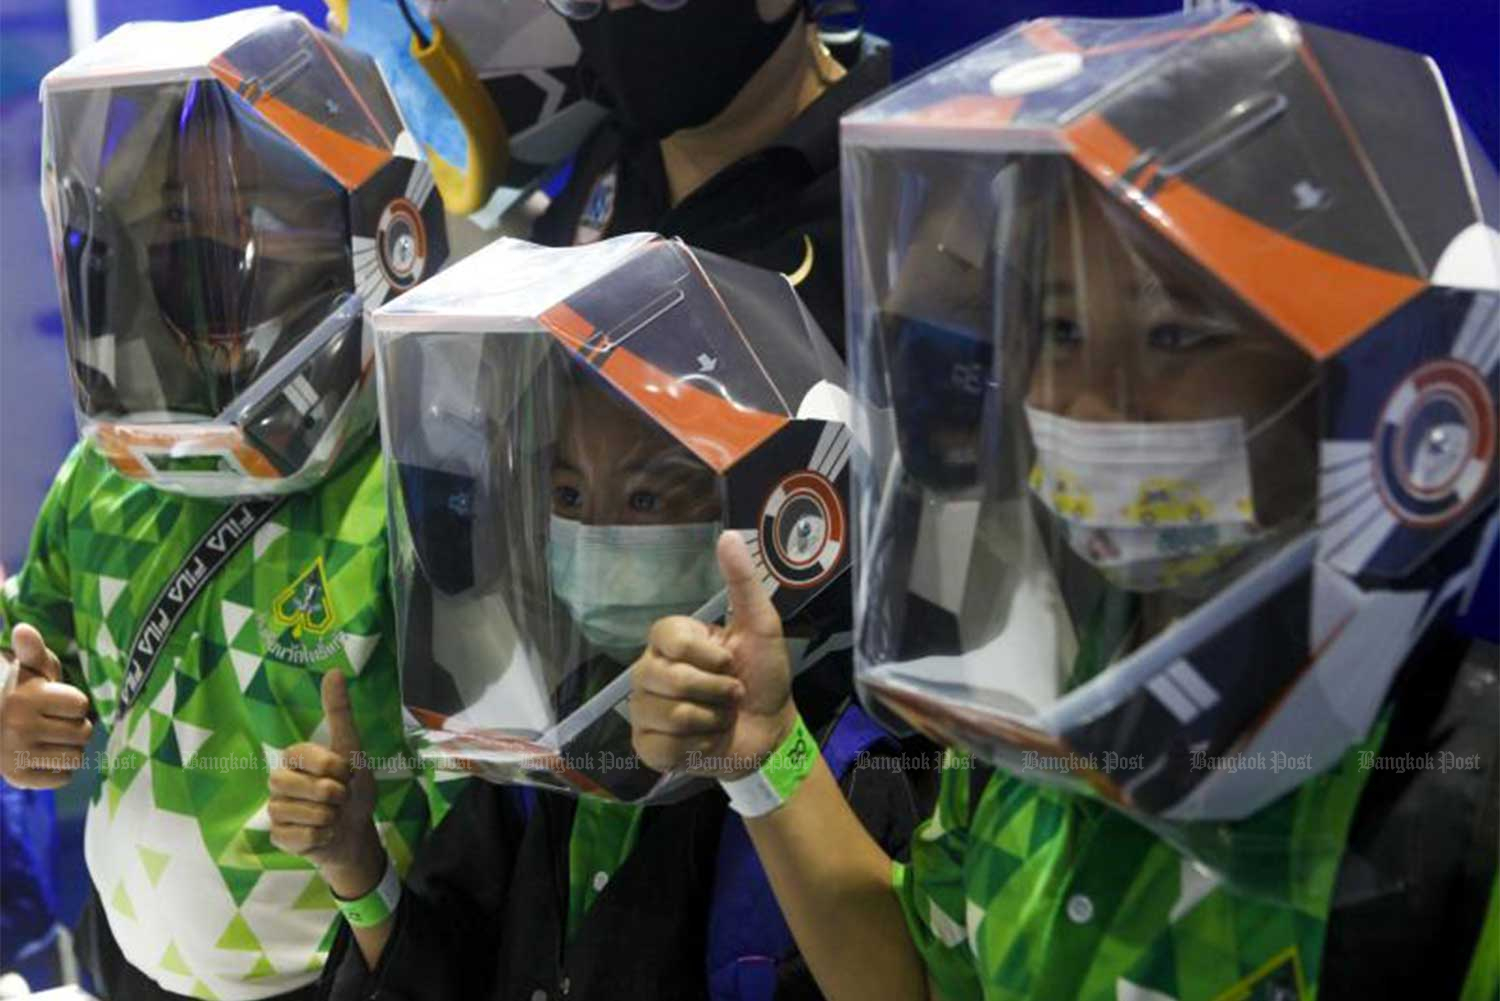 Students wearing face masks and face shields as they take part in a 'negative pressure helmet' workshop at the National Science and Technology Fair 2020 on Friday. The event is held until Nov 23 at Impact Muang Thong Thani. (Photo: Pattarapong Chatpattarasill)